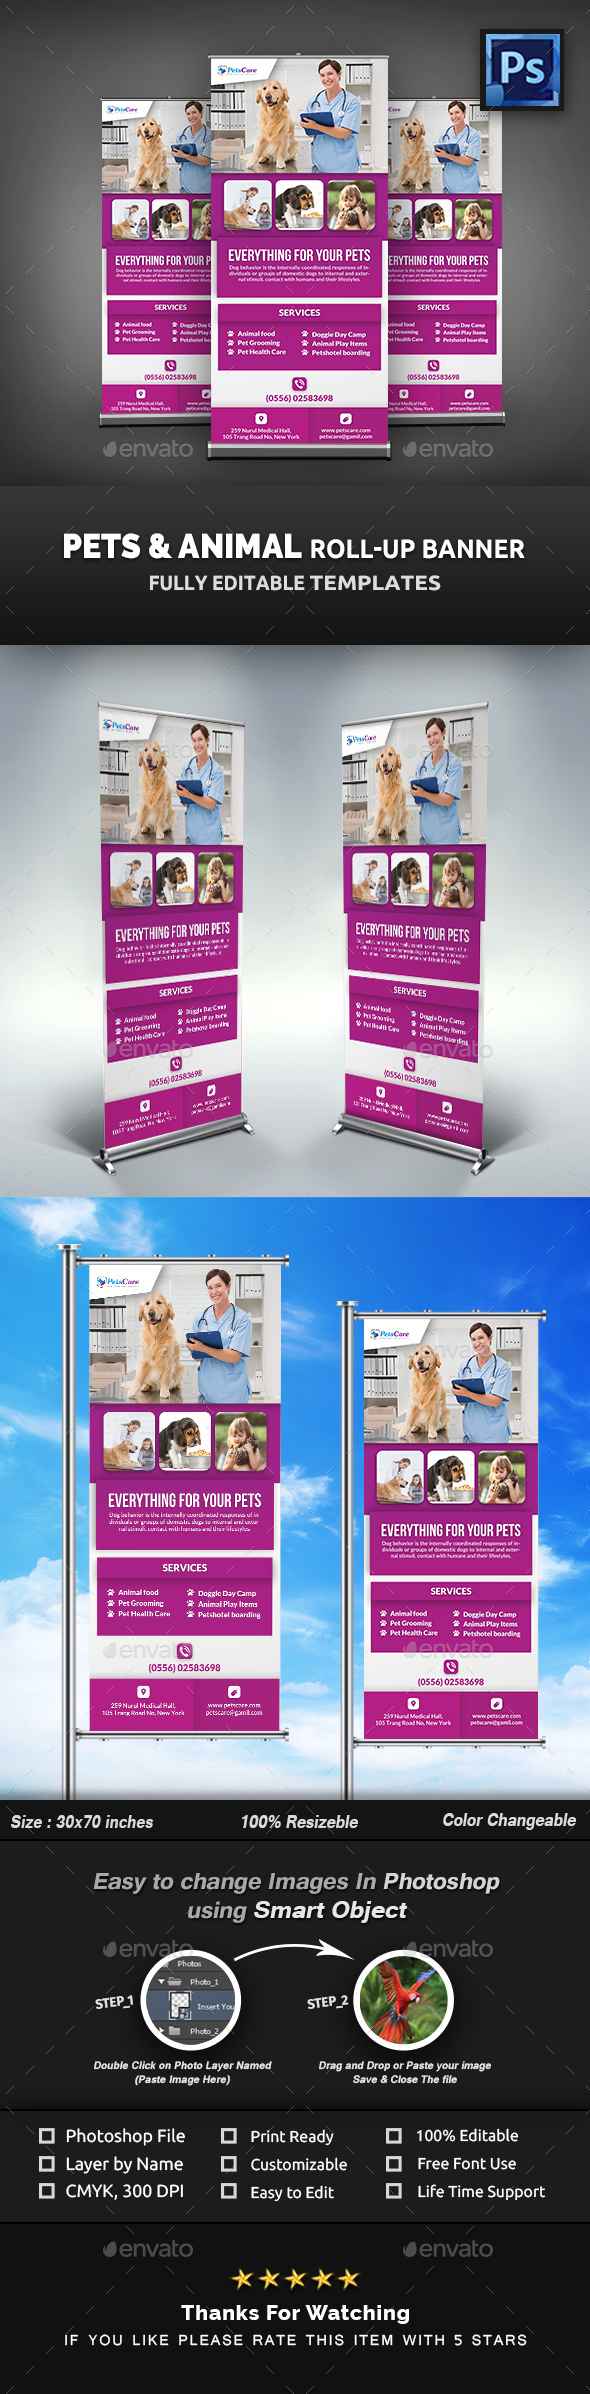 Pet Care Roll-Up Banner Template - Signage Print Templates